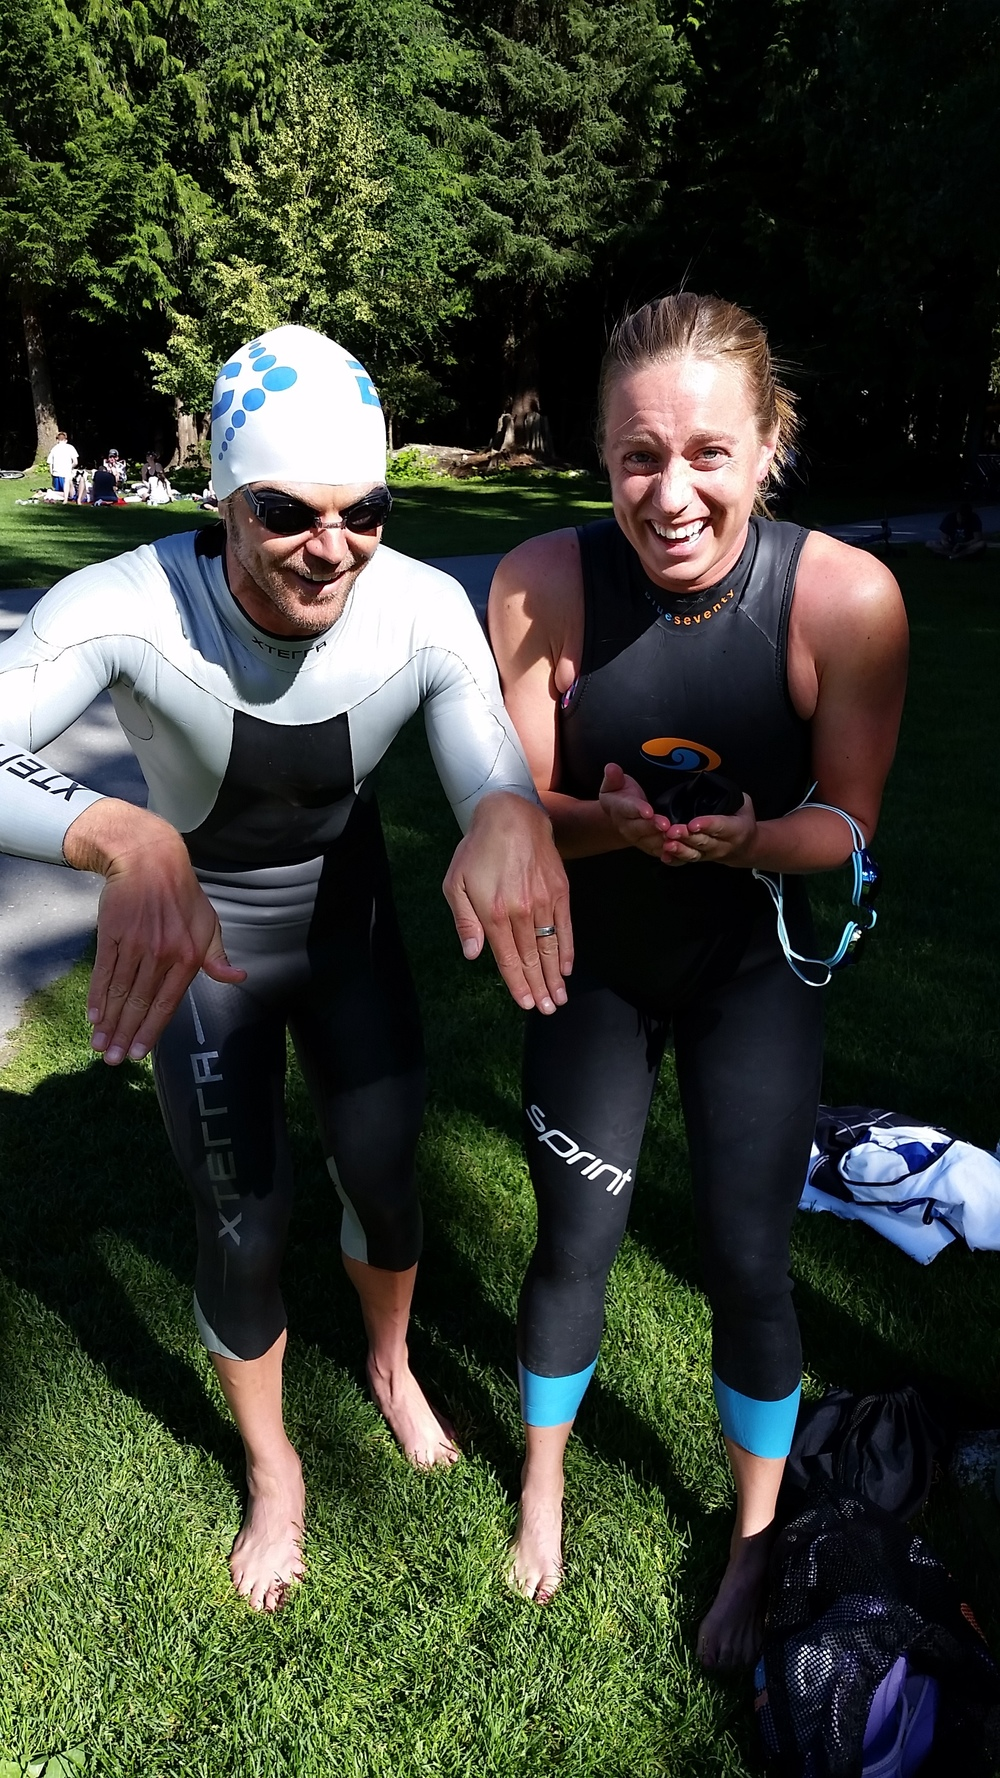 Our friends, Jenny and Rob Ferris, joined us on this trip. I do the majority of my swim training with Jenny in Boulder and here I am demonstrating proper breaststroke technique to the former Olympic Trials swimmer. She appreciated the tips.